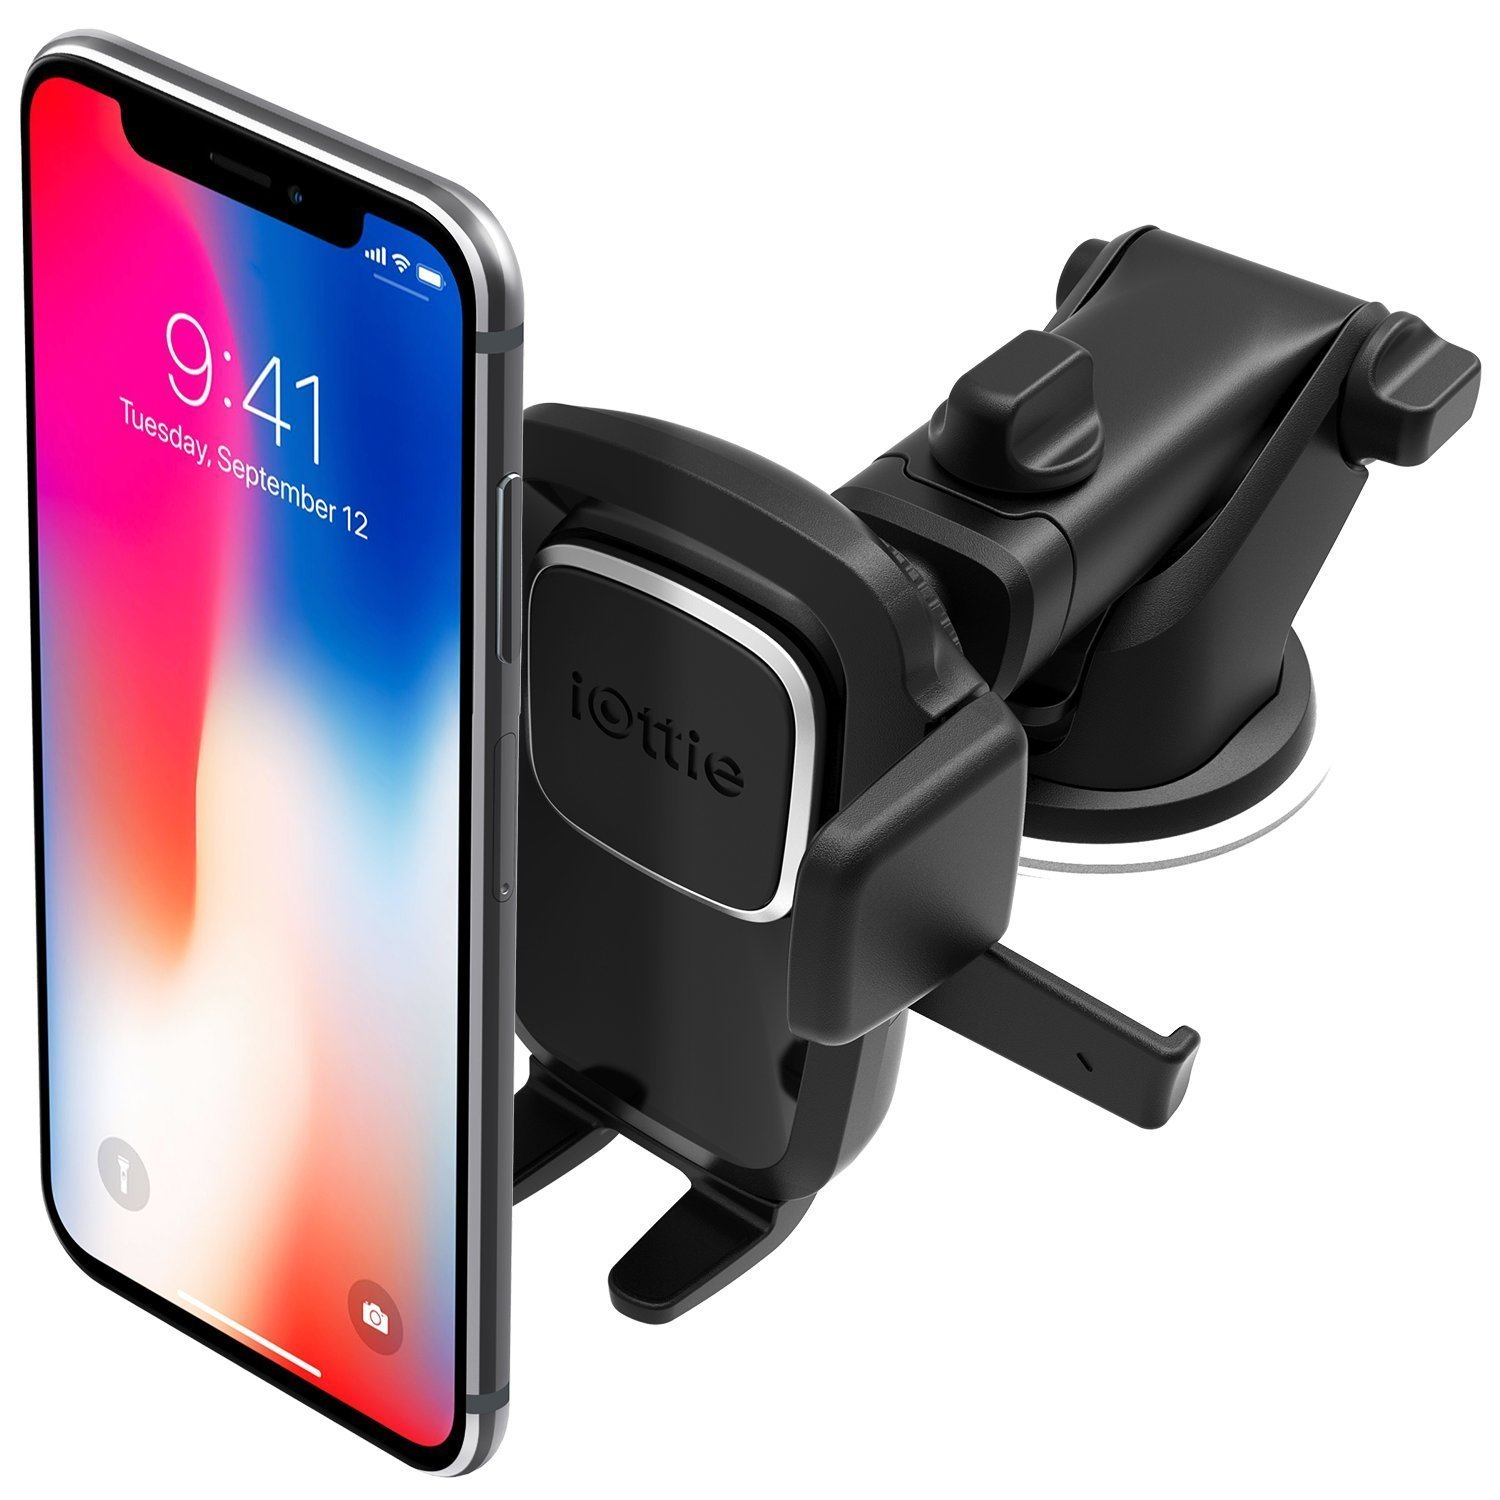 iOttie Easy One Touch 4 Dashboard & Windshield Car Phone Mount Holder for iPhone X 8 Plus 7 6s SE Samsung Galaxy S9 S8 Edge S7 S6 Note 9 & Other Smartphone [10 Dollar Amazon Credit] by iOttie